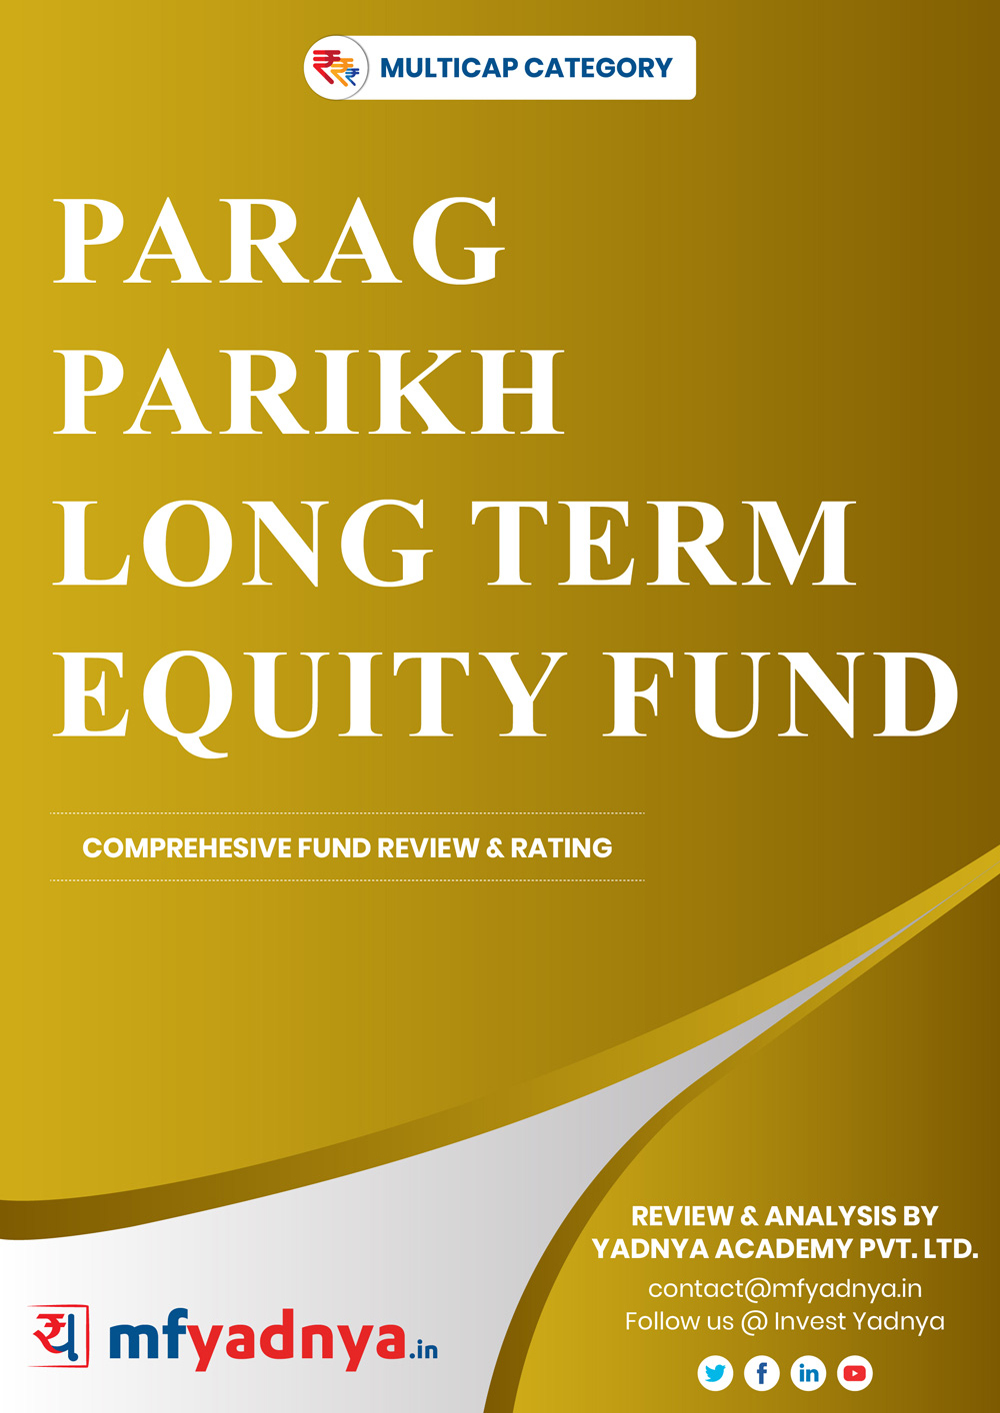 Multi-Cap Category Review - Parag Parikh Long Term Equity Fund. Most Comprehensive and detailed MF review based on Yadnya's proprietary methodology of Green, Yellow & Red Star. Detailed Analysis & Review based on July 31st, 2019 data.